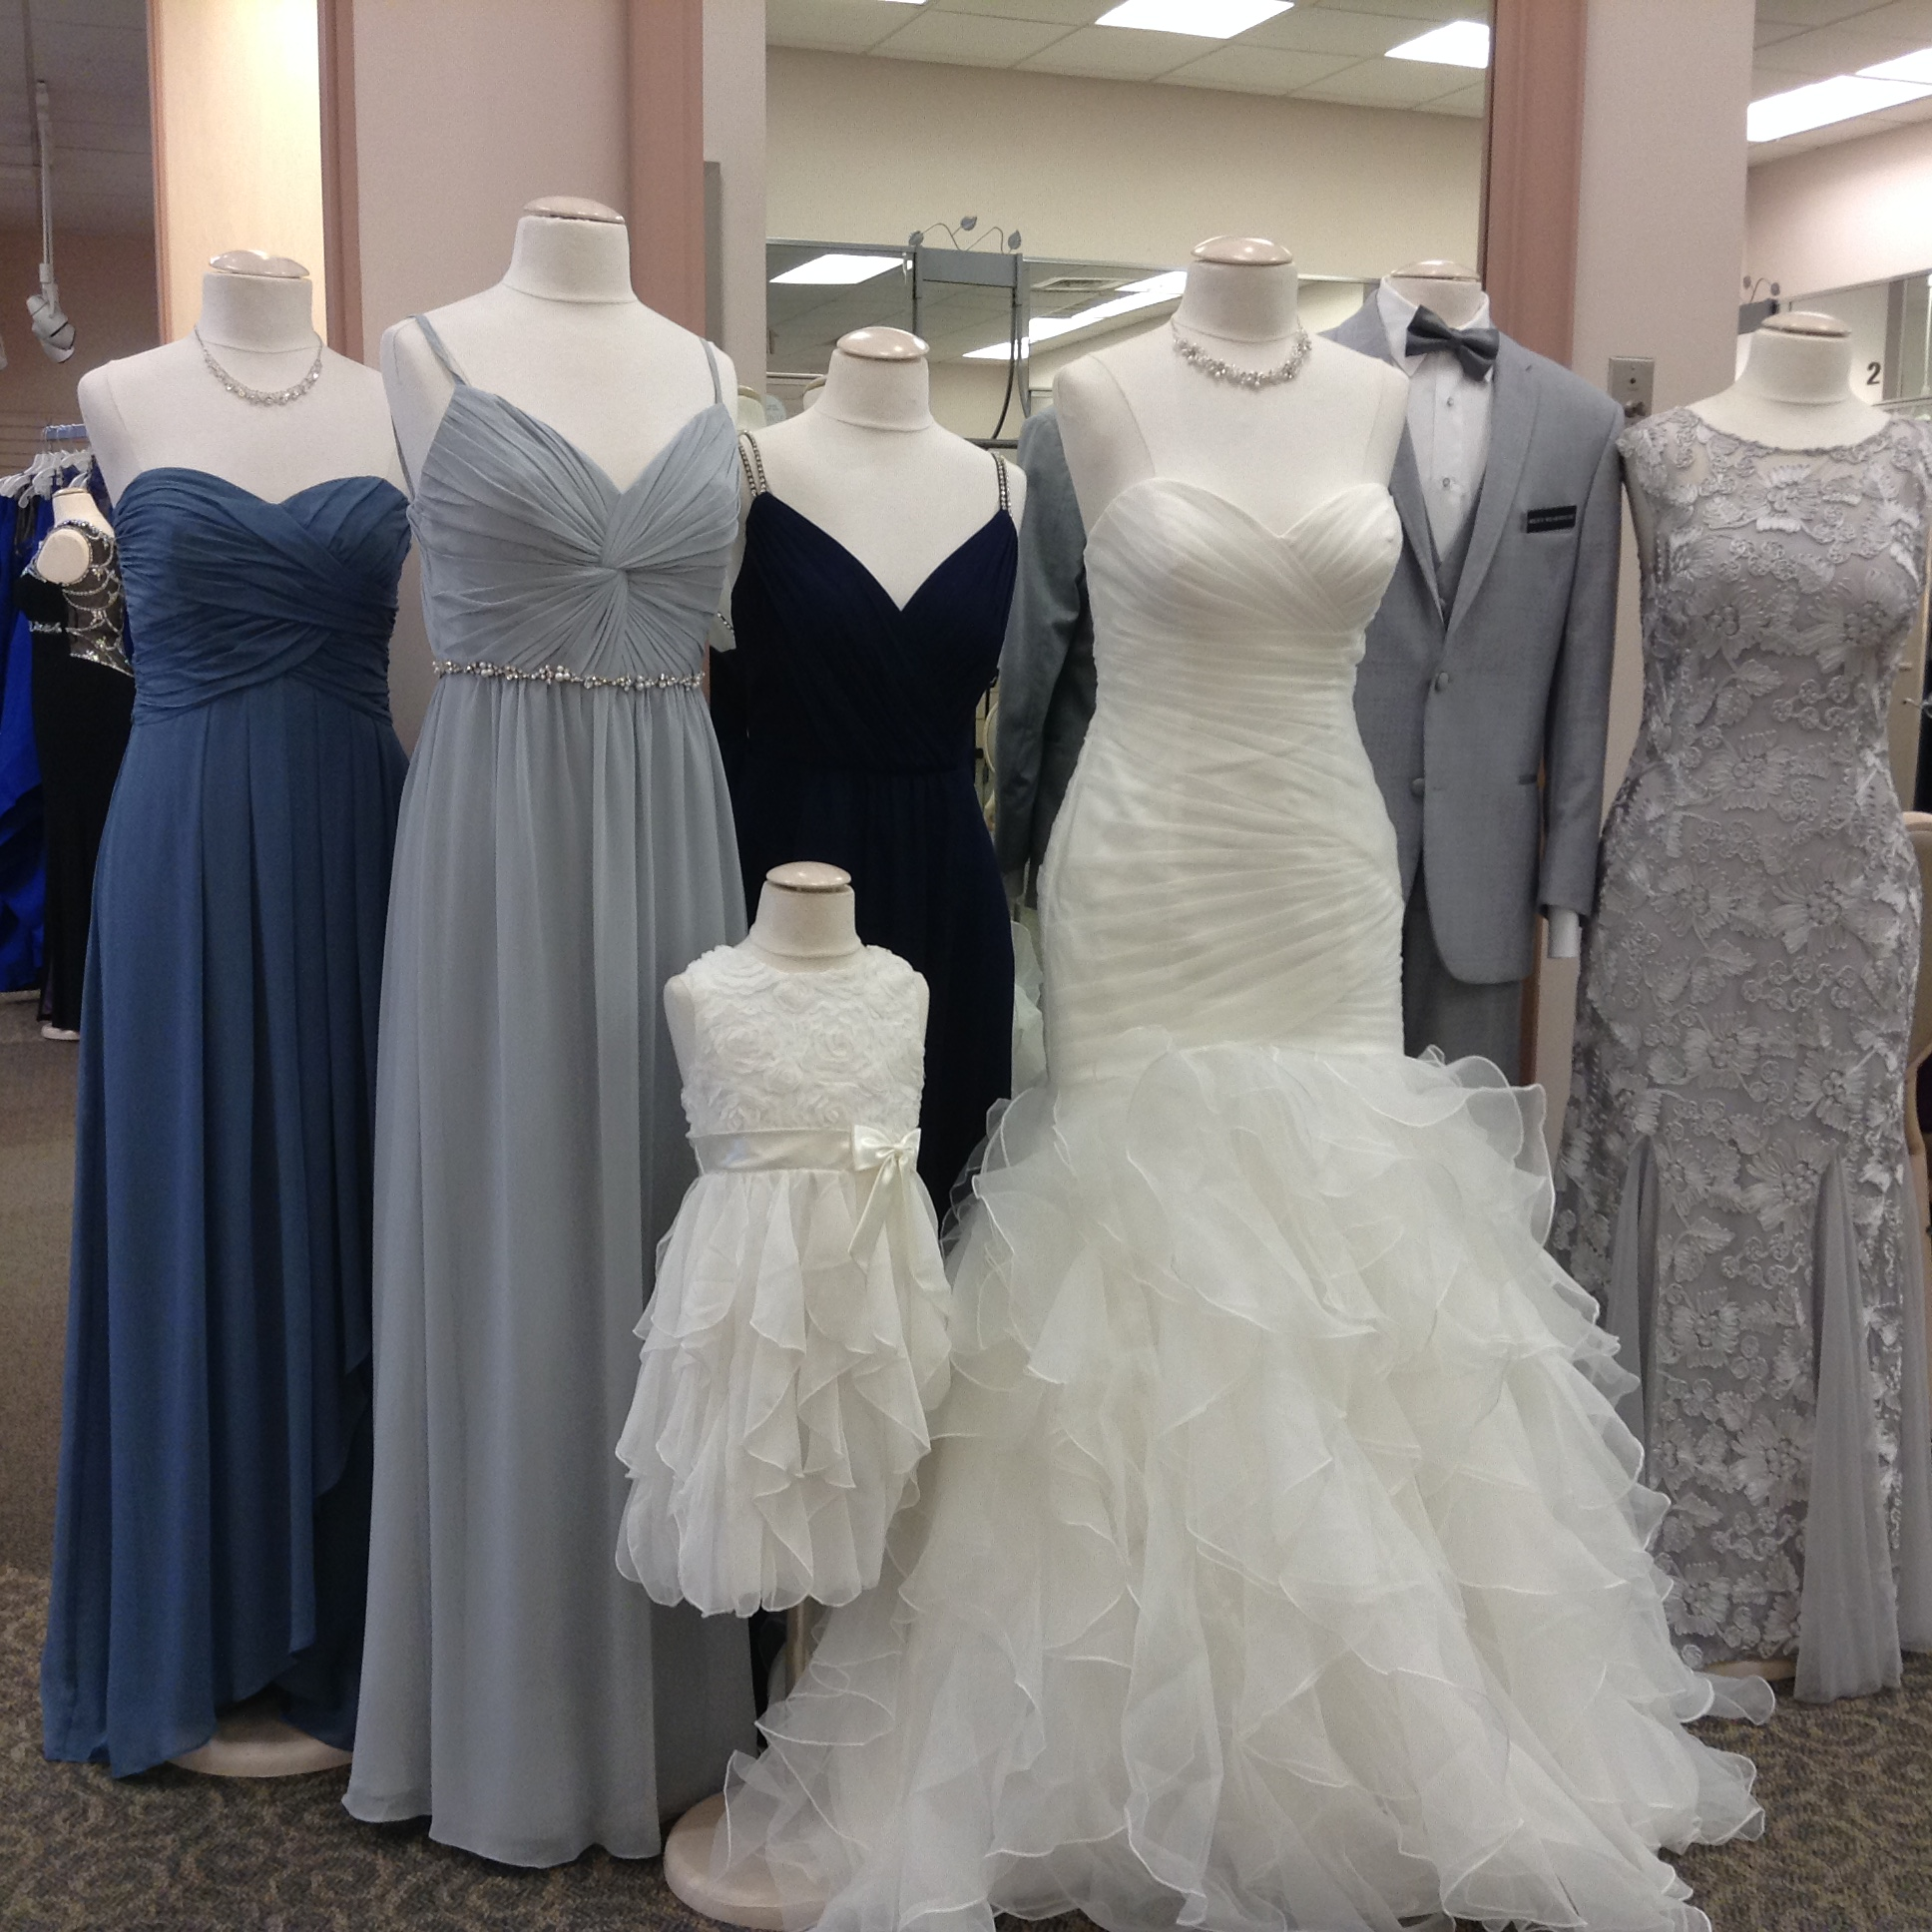 David's Bridal is the ultimate one-stop shop for wedding dresses more Welcome to David's Bridal Columbus, Ohio store, serving brides and special occasion customers of New Albany, Westerville, Worthington and more/5(45).